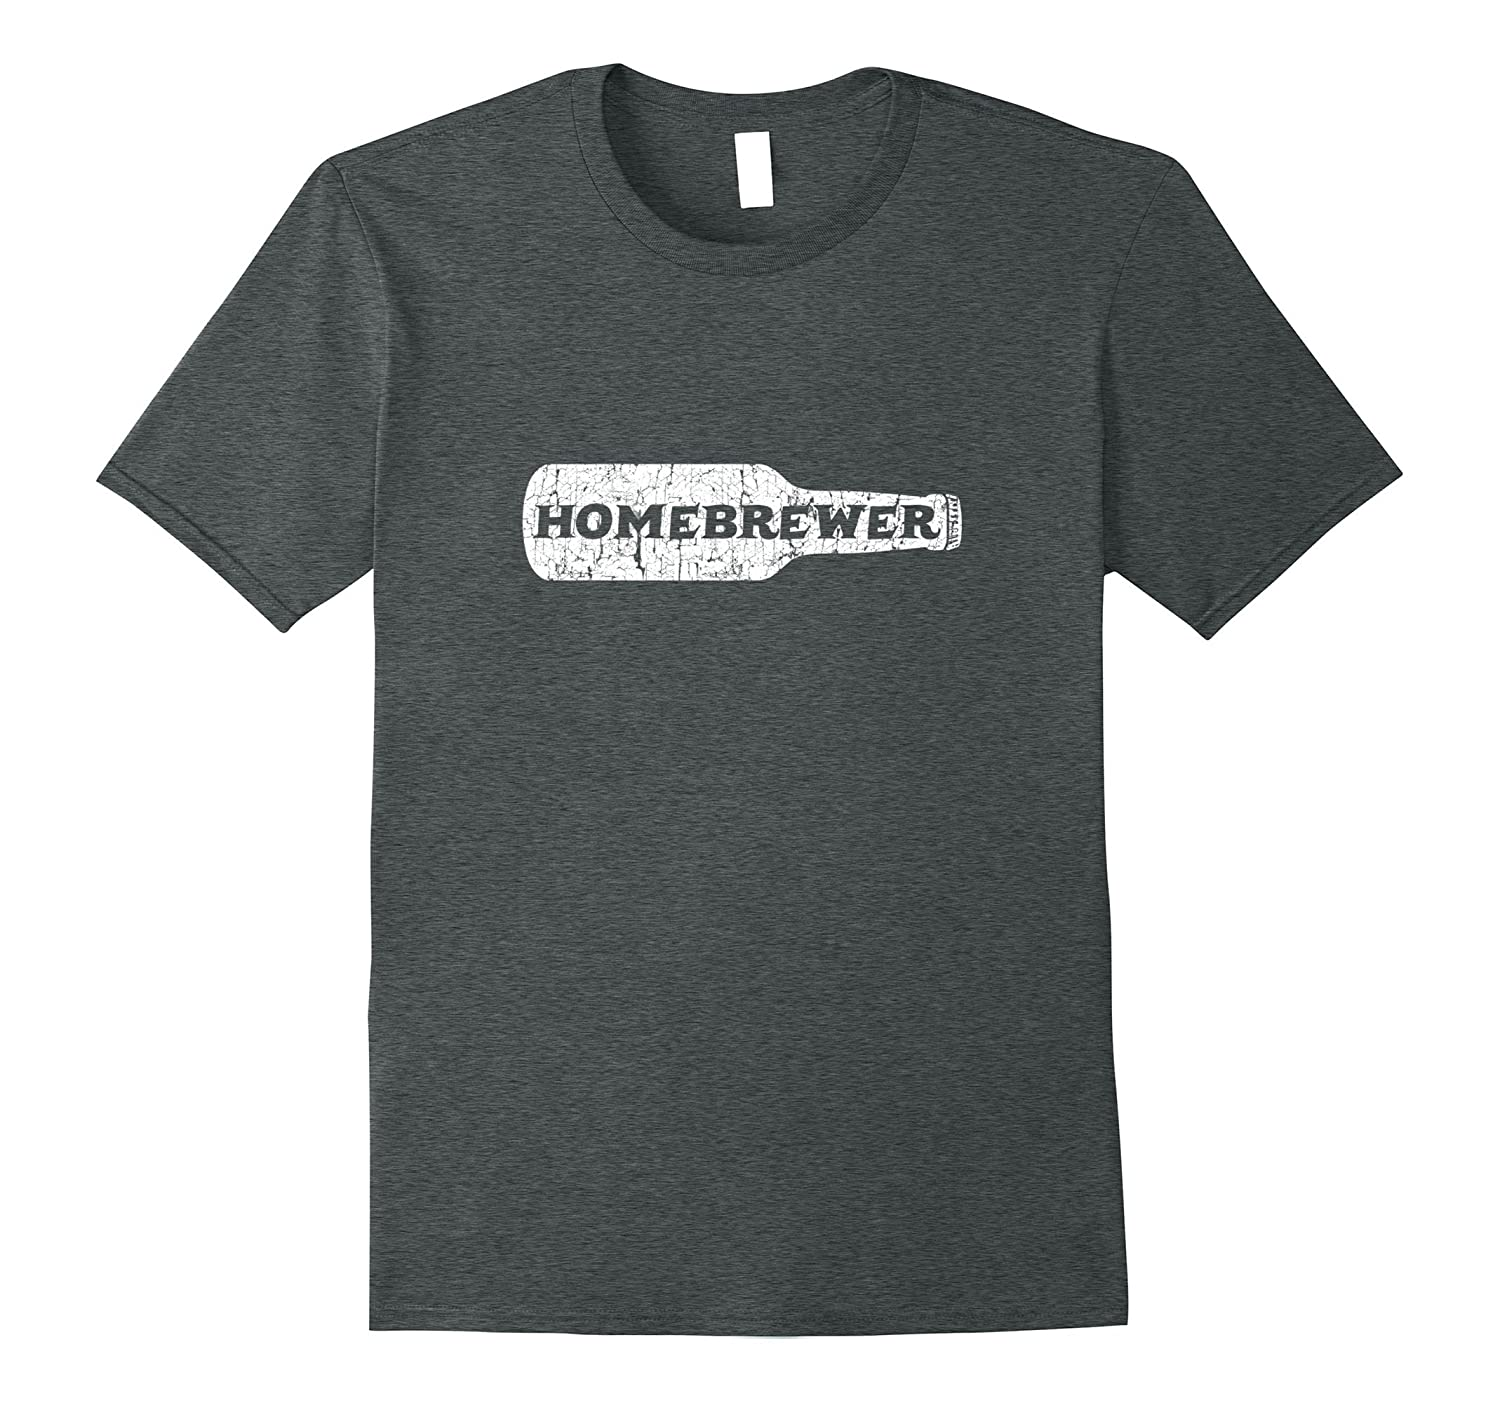 Brew Master Beer Home Brewer Gift Brewing Bottle Tee T Shirt-CL